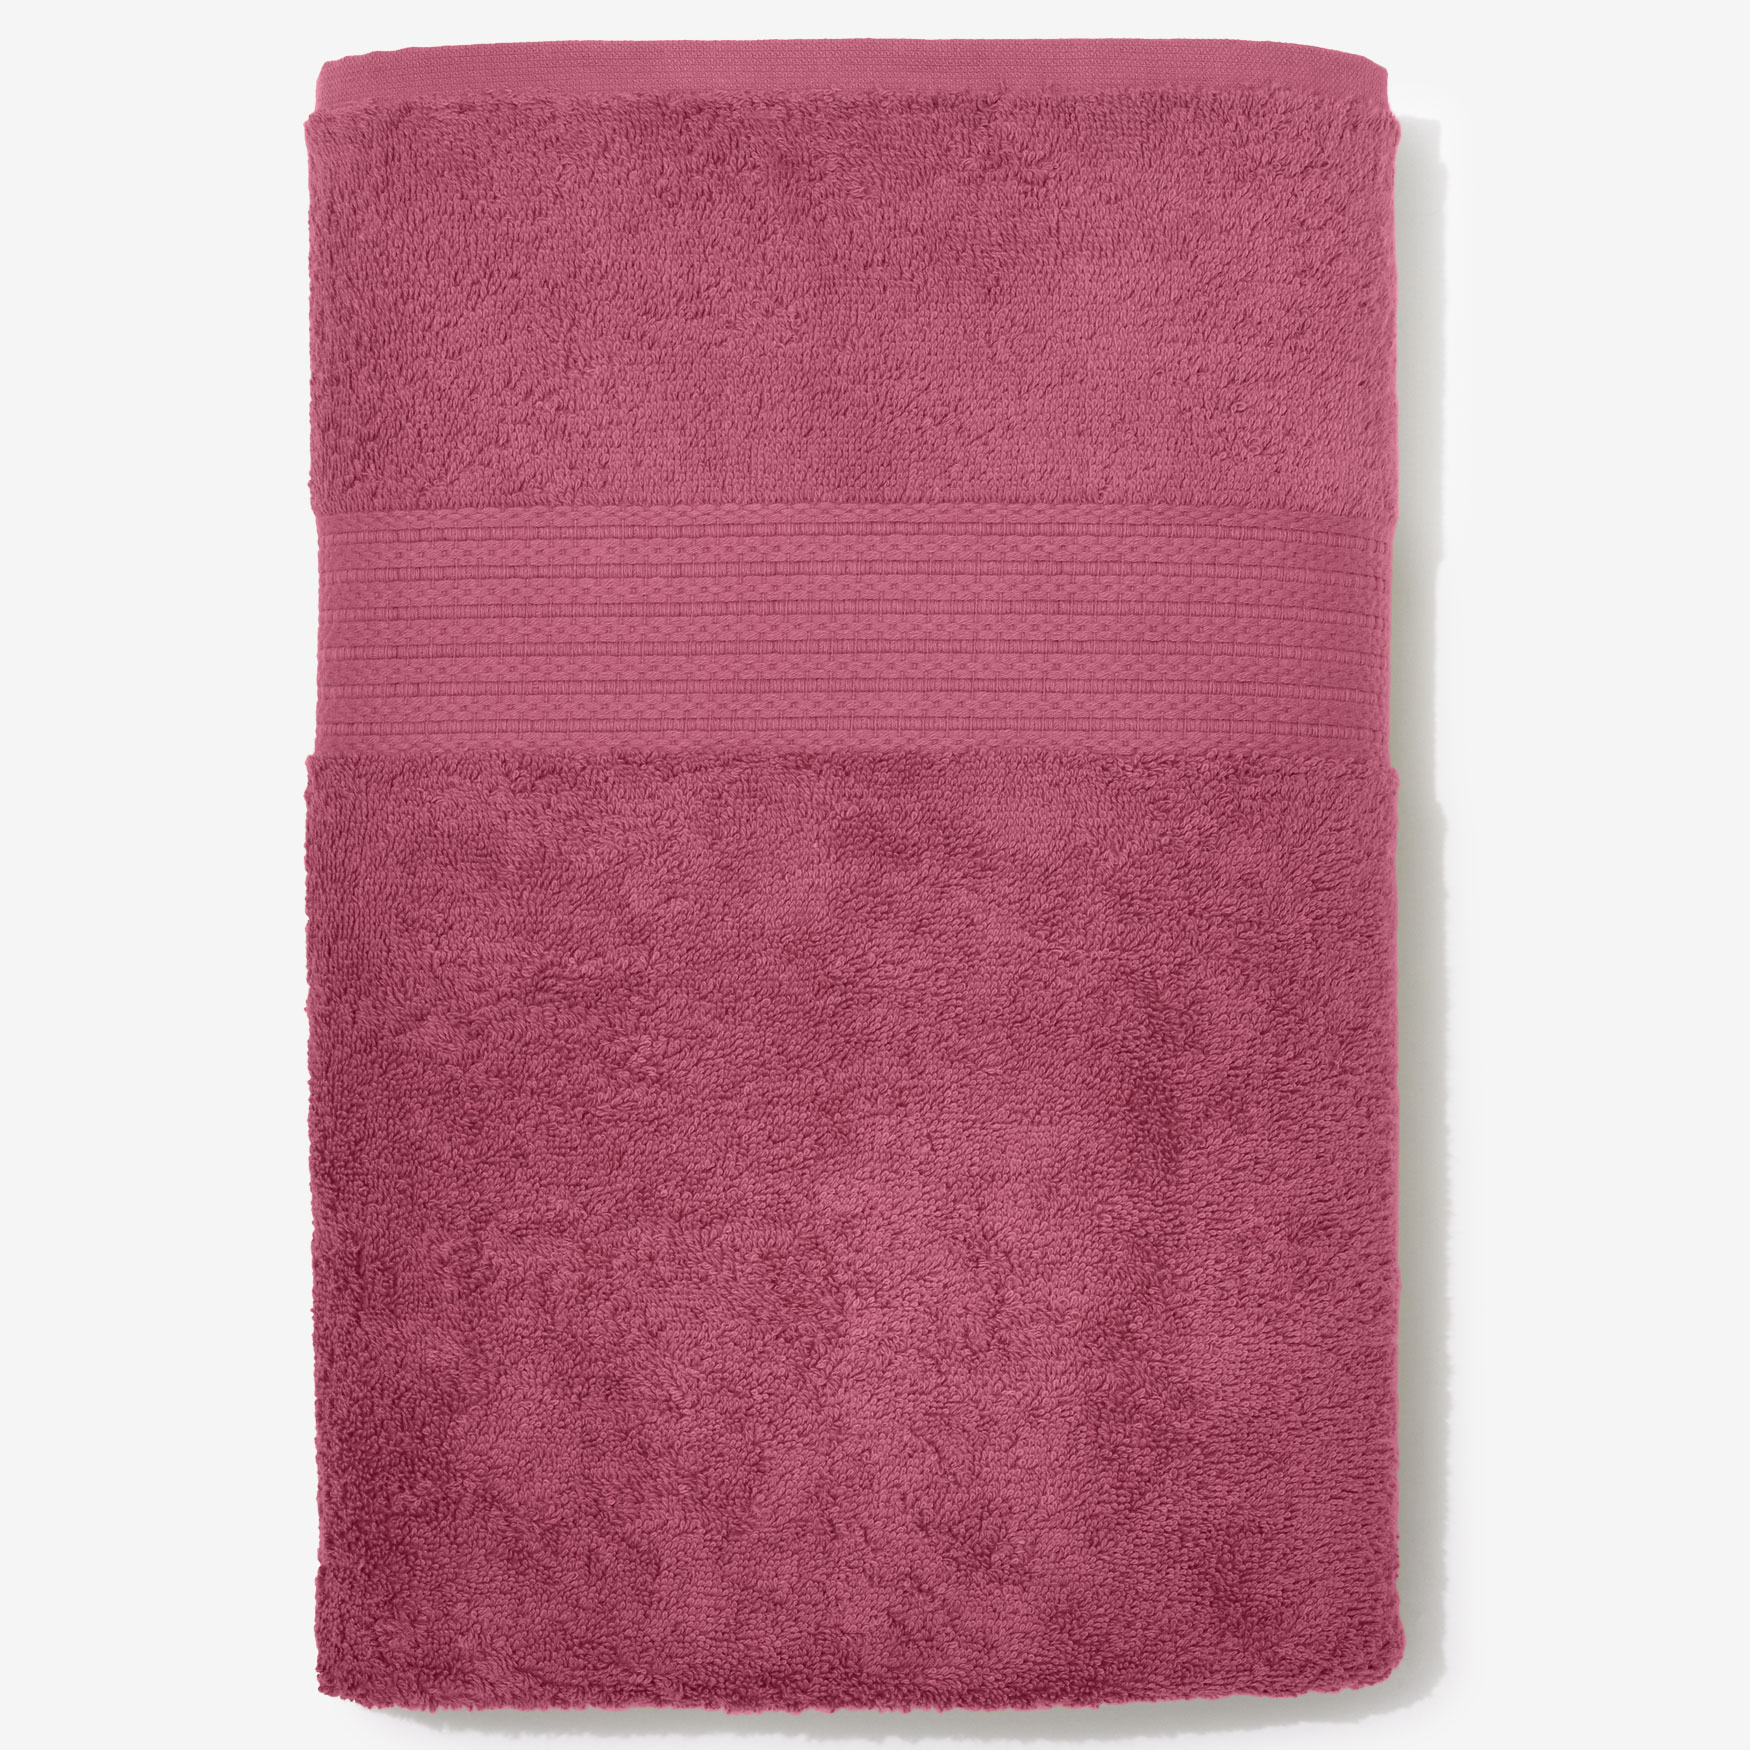 BrylaneHome® Studio Oversized Cotton Bath Sheet Towel